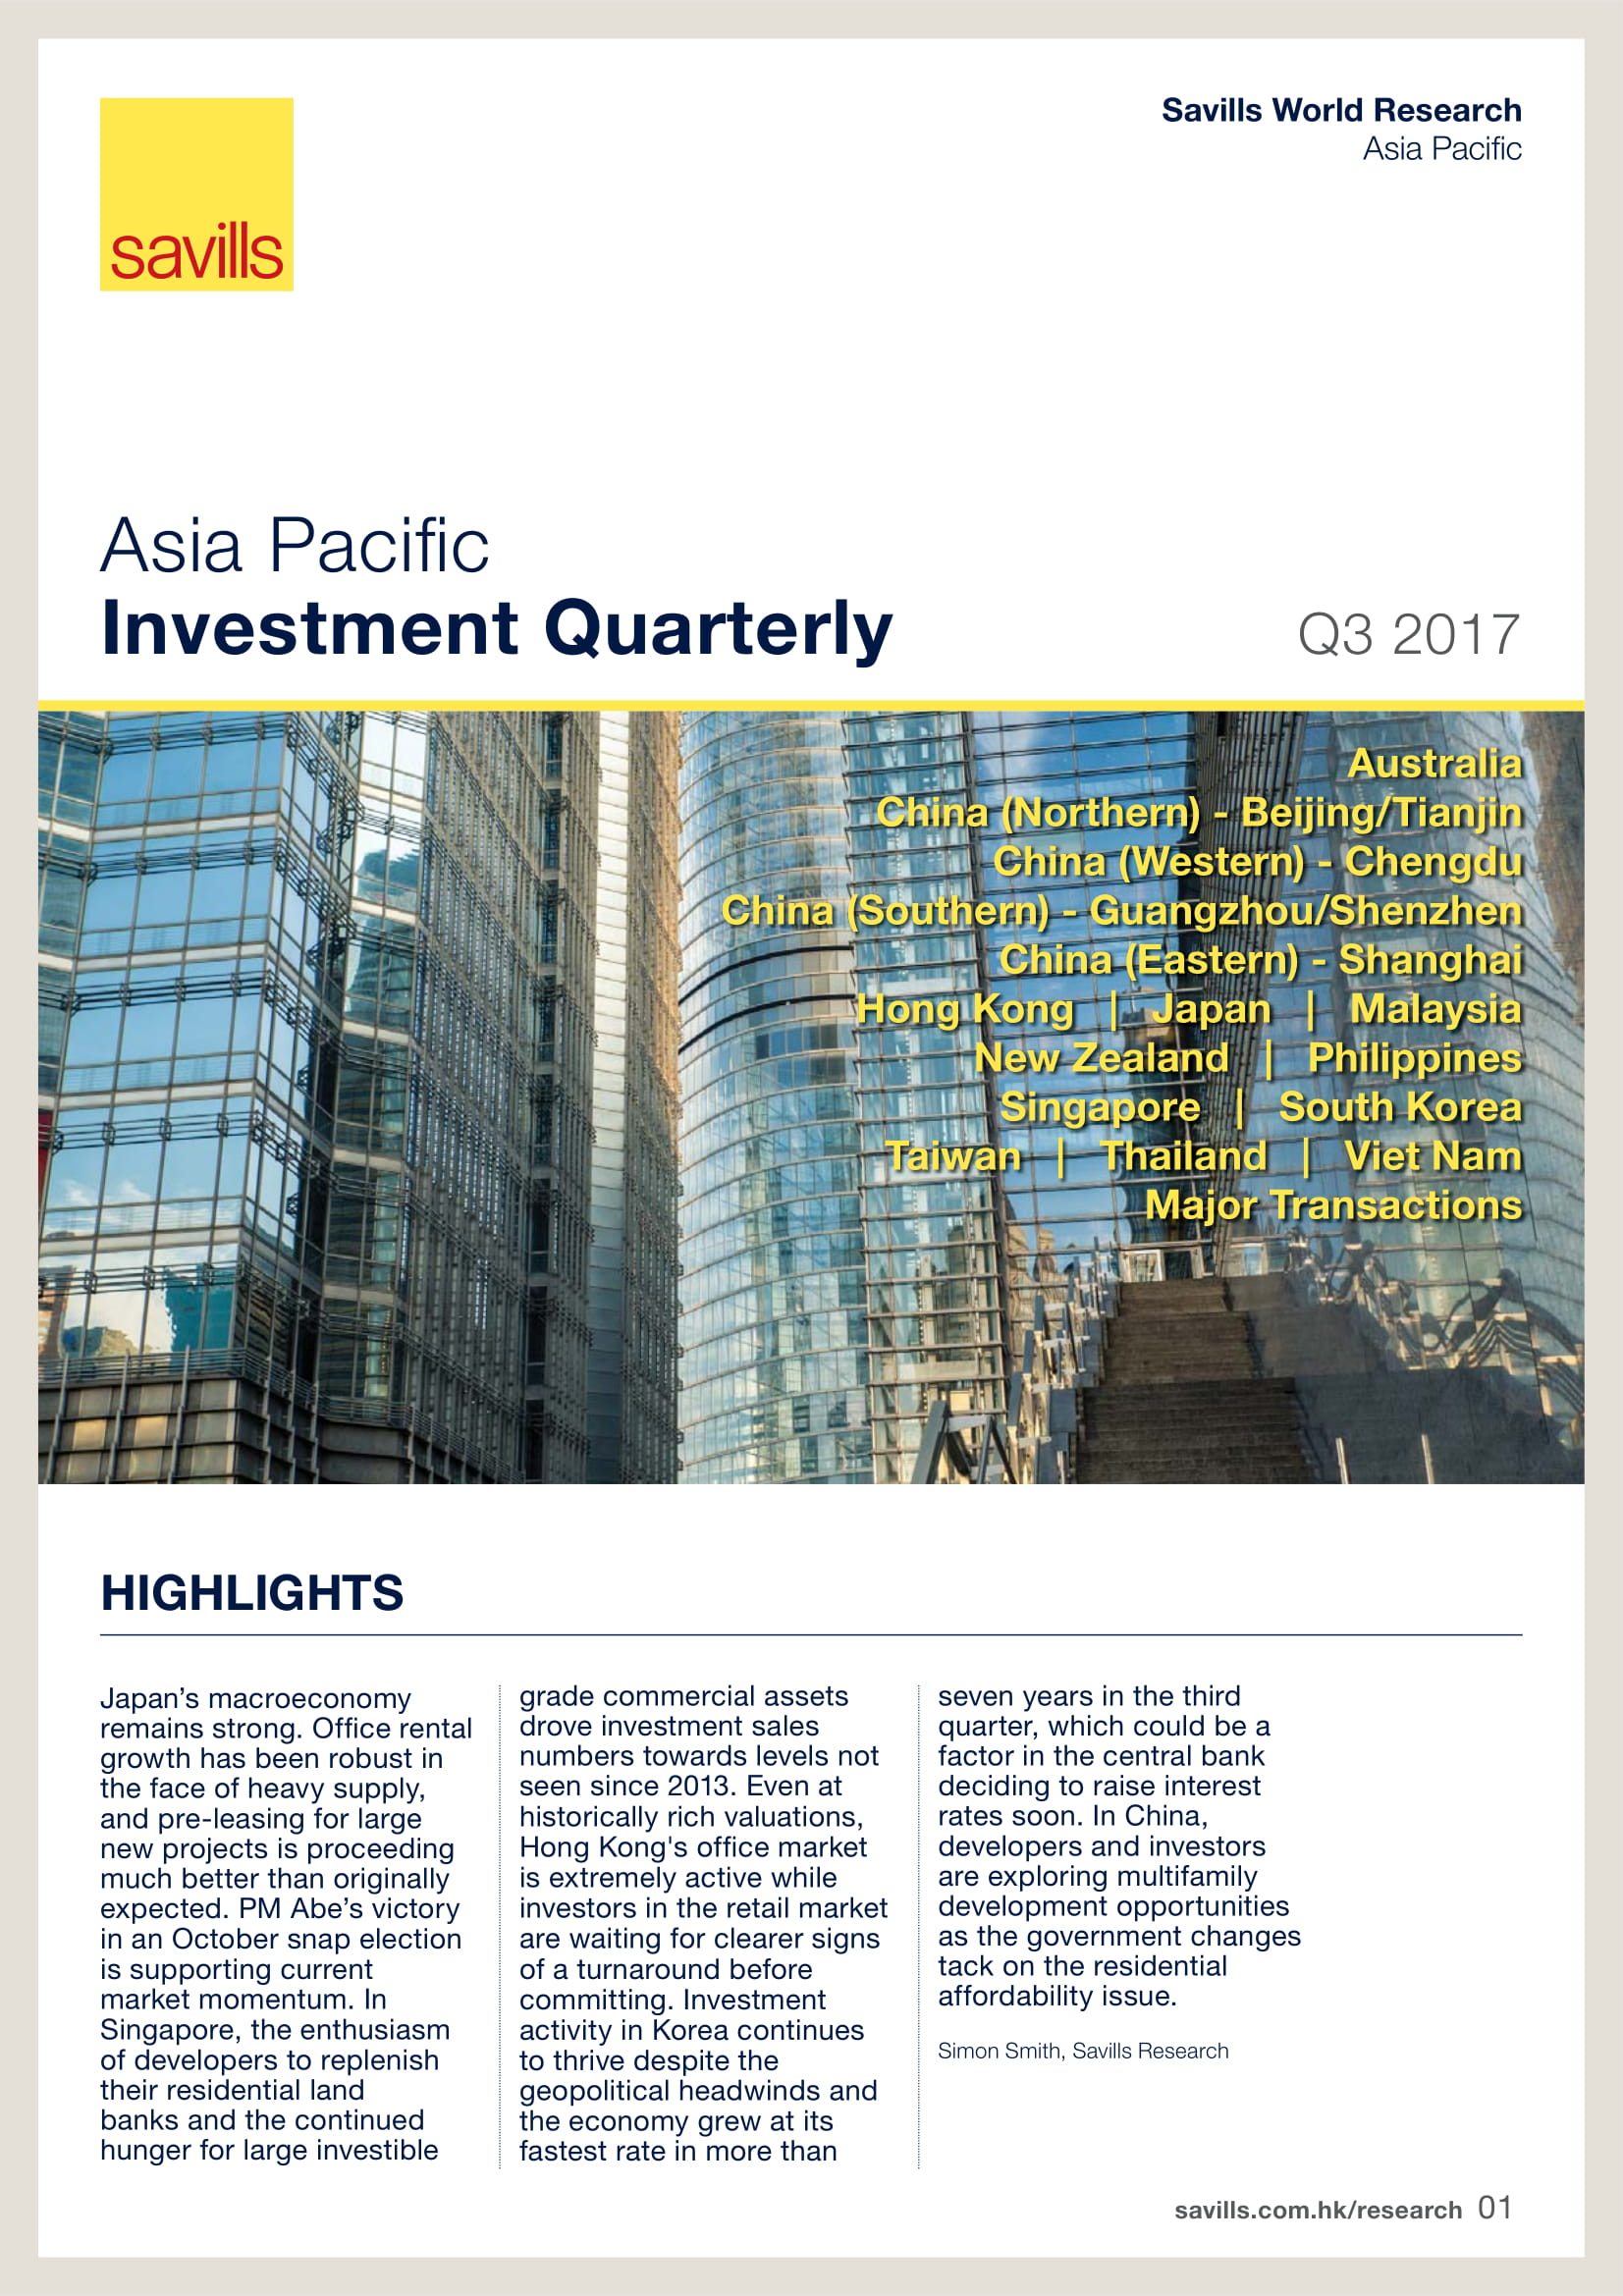 Asia Pacific Investment Quarterly Q3 2017